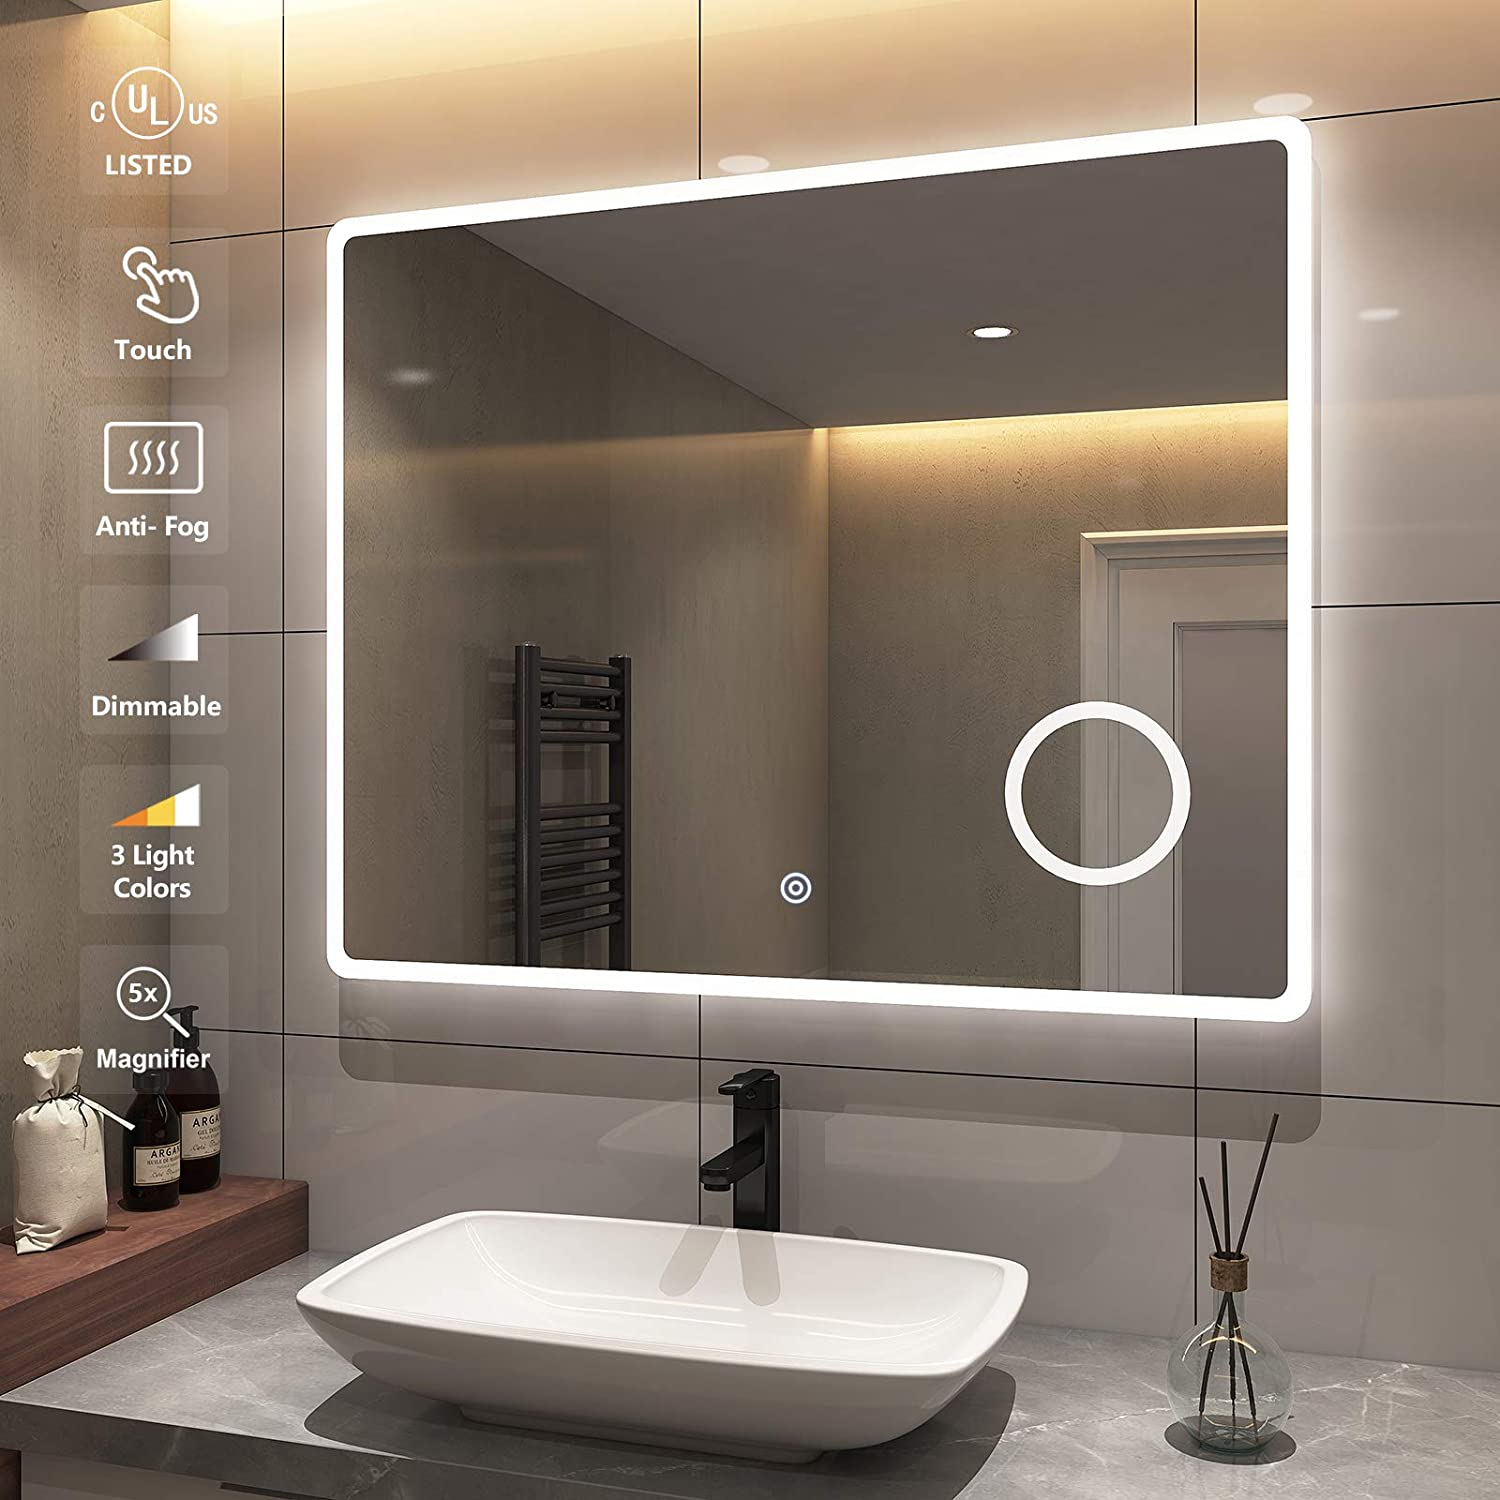 Emke 40 X 32 Inch Bathroom Led Mirror Anti Fog Dimmable Wall Mounted Vanity Mirror With Lights And Magnifier Brightness Memory Ip44 Waterproof Cri 90 Ul Listed Kitchen Dining